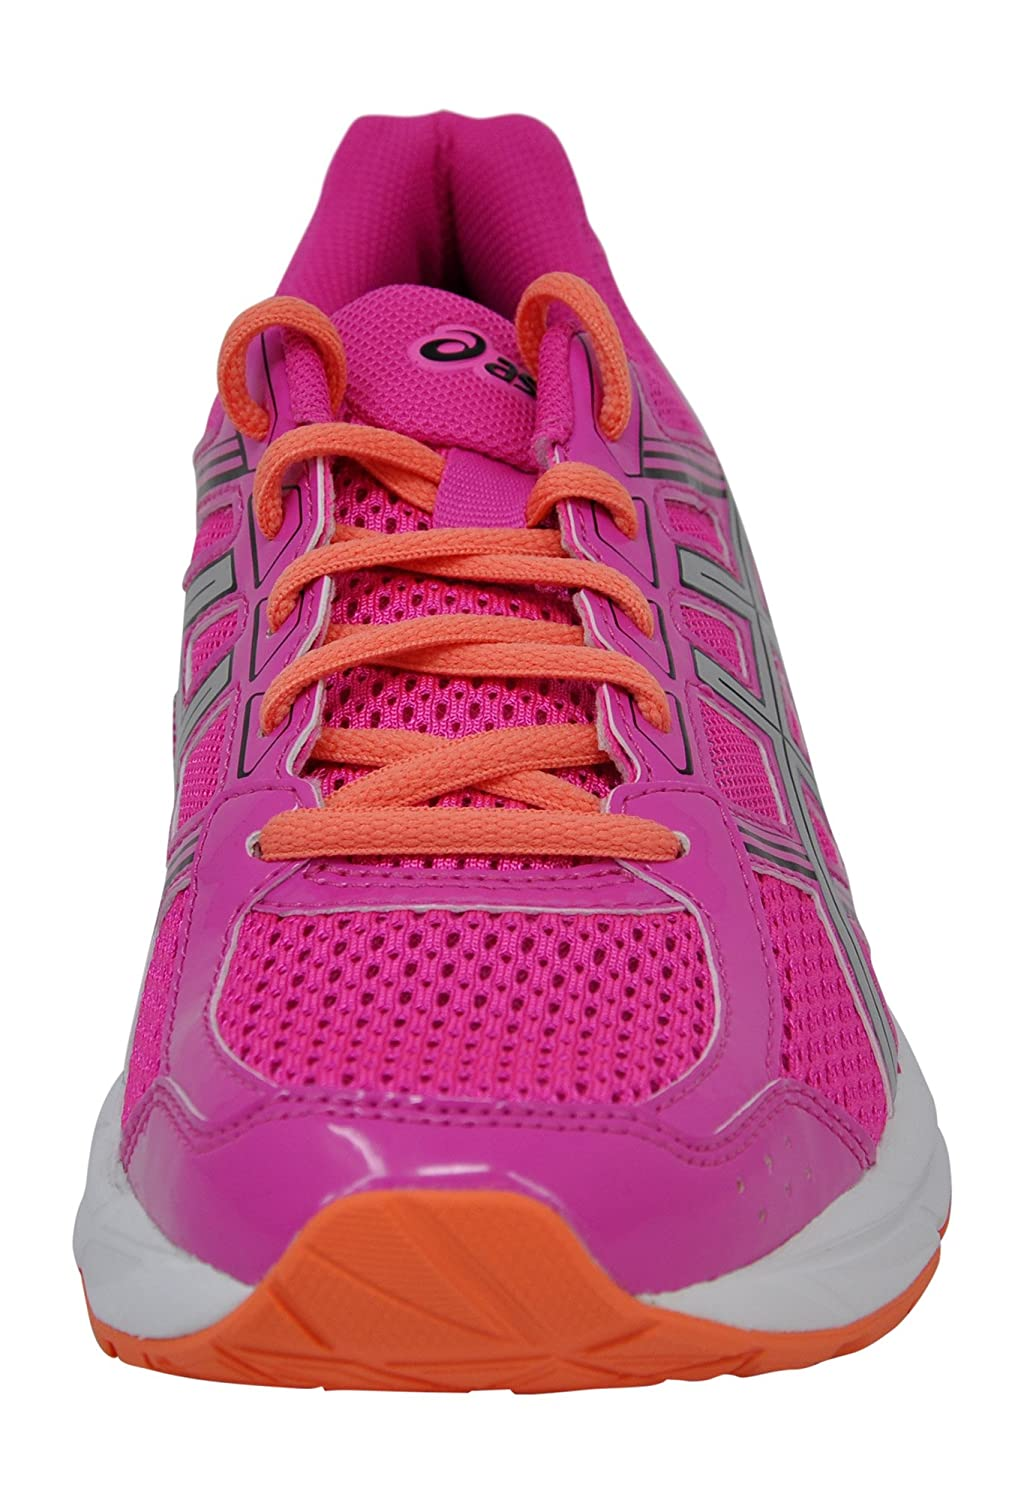 ASICS Women's Gel-Contend 4 Running Shoe B077XN68DF 6.5 B(M) US|Pink Glow/Silver/Black